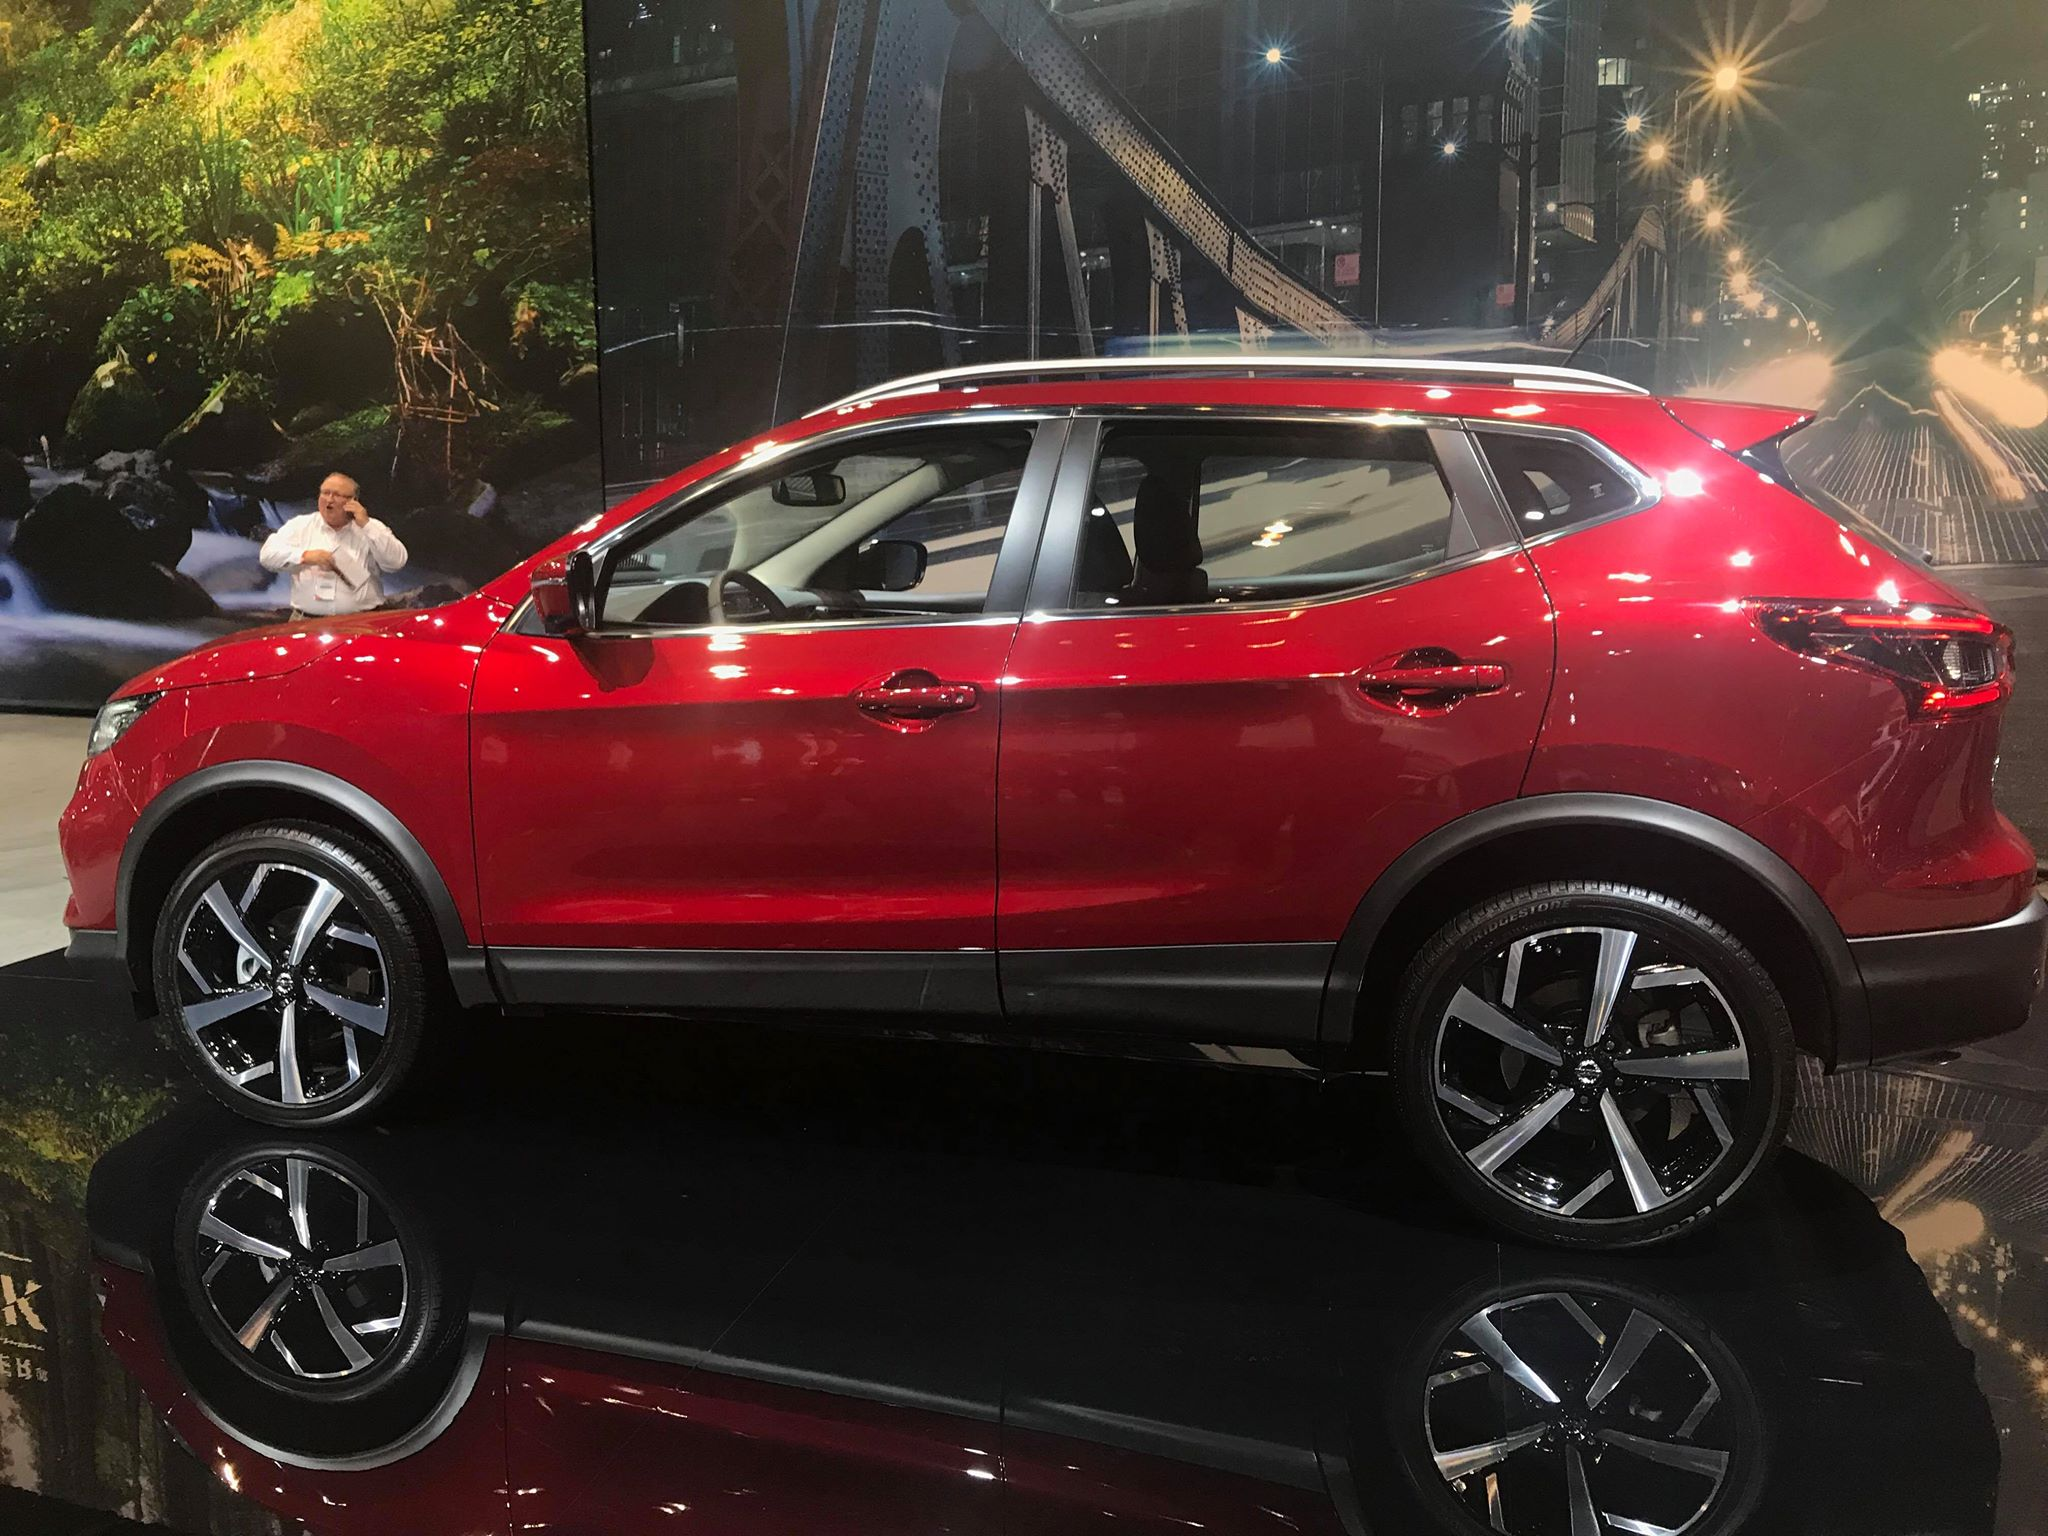 2020 nissan rogue sport makes appearance at 2019 chicago auto show the news wheel. Black Bedroom Furniture Sets. Home Design Ideas